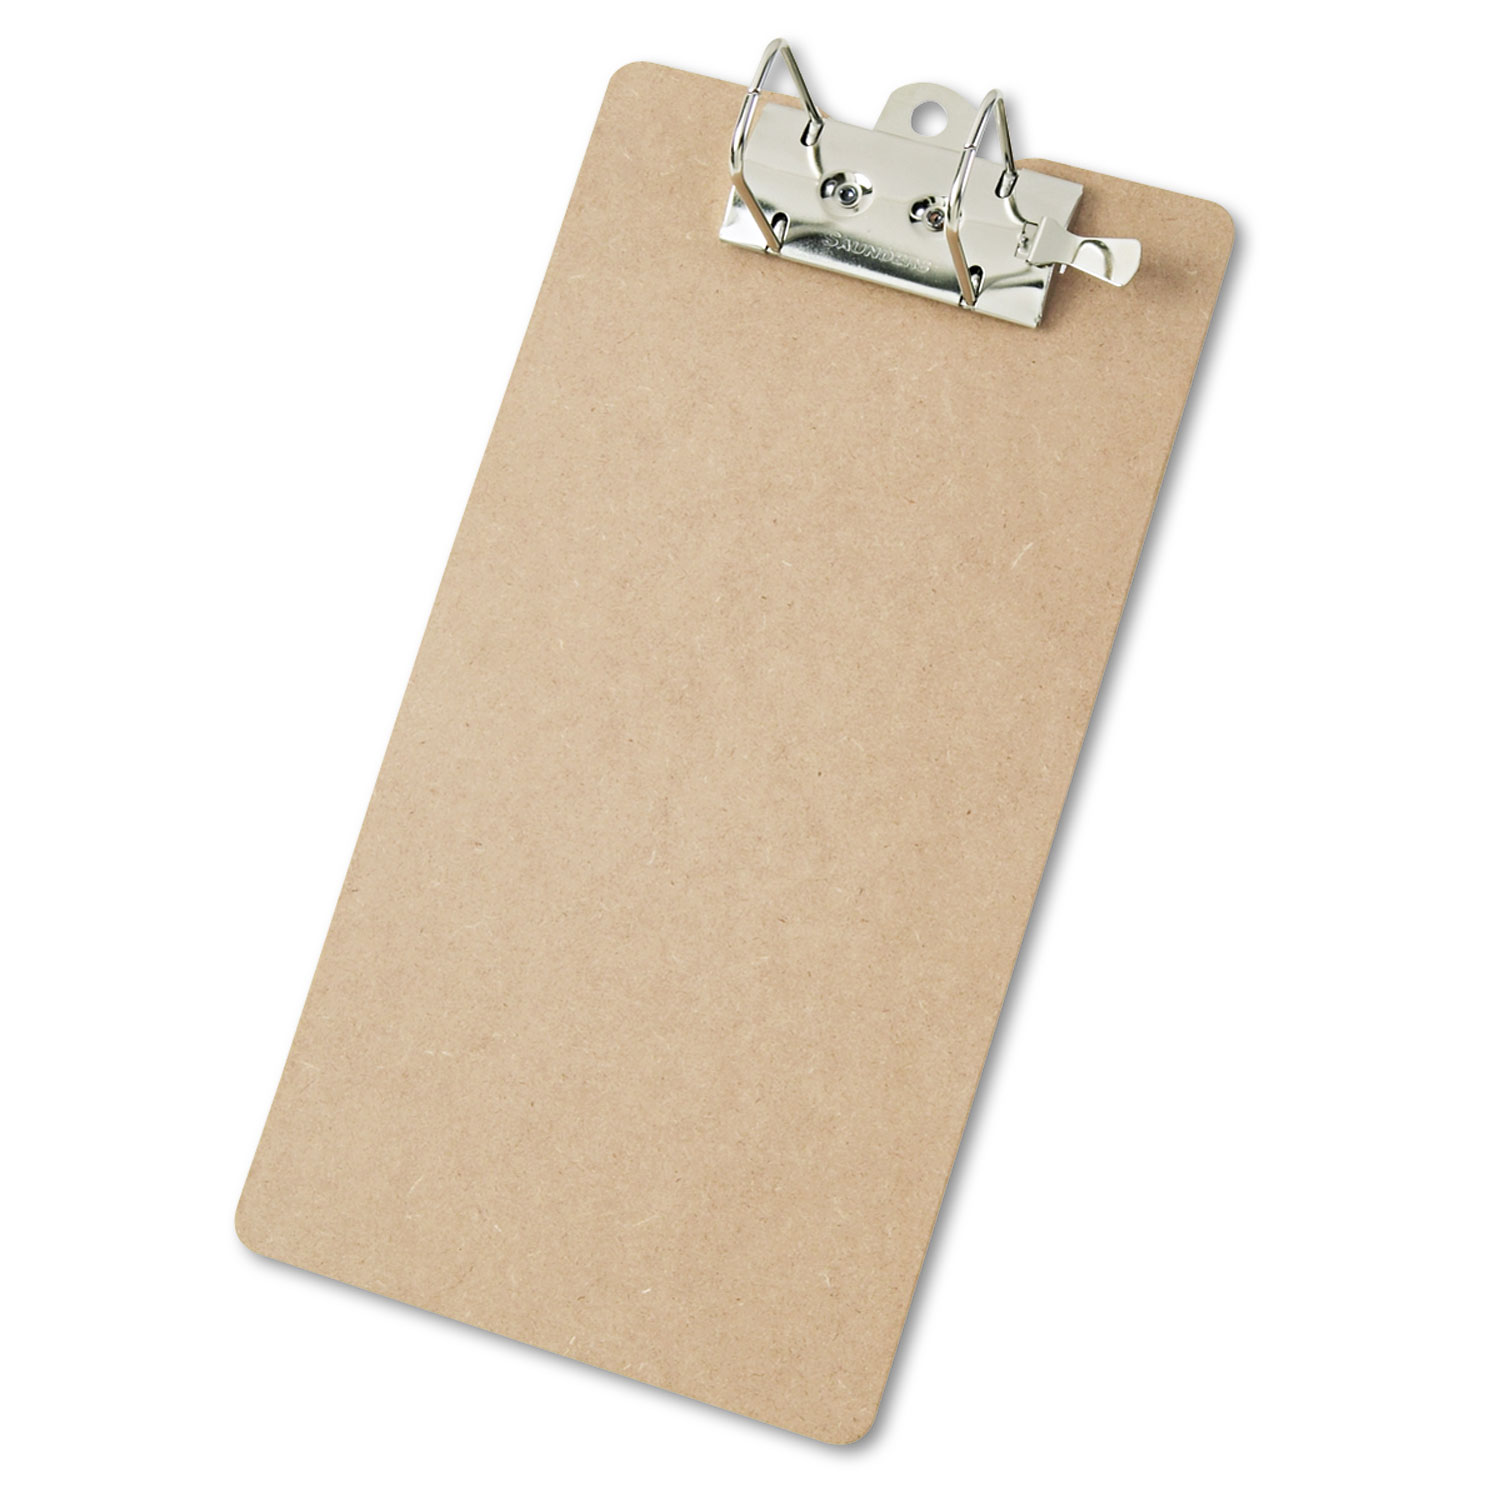 """Recycled Hardboard Archboard Clipboard, 2"""" Clip Cap, 8 1/2 x 14 Sheets, Brown"""